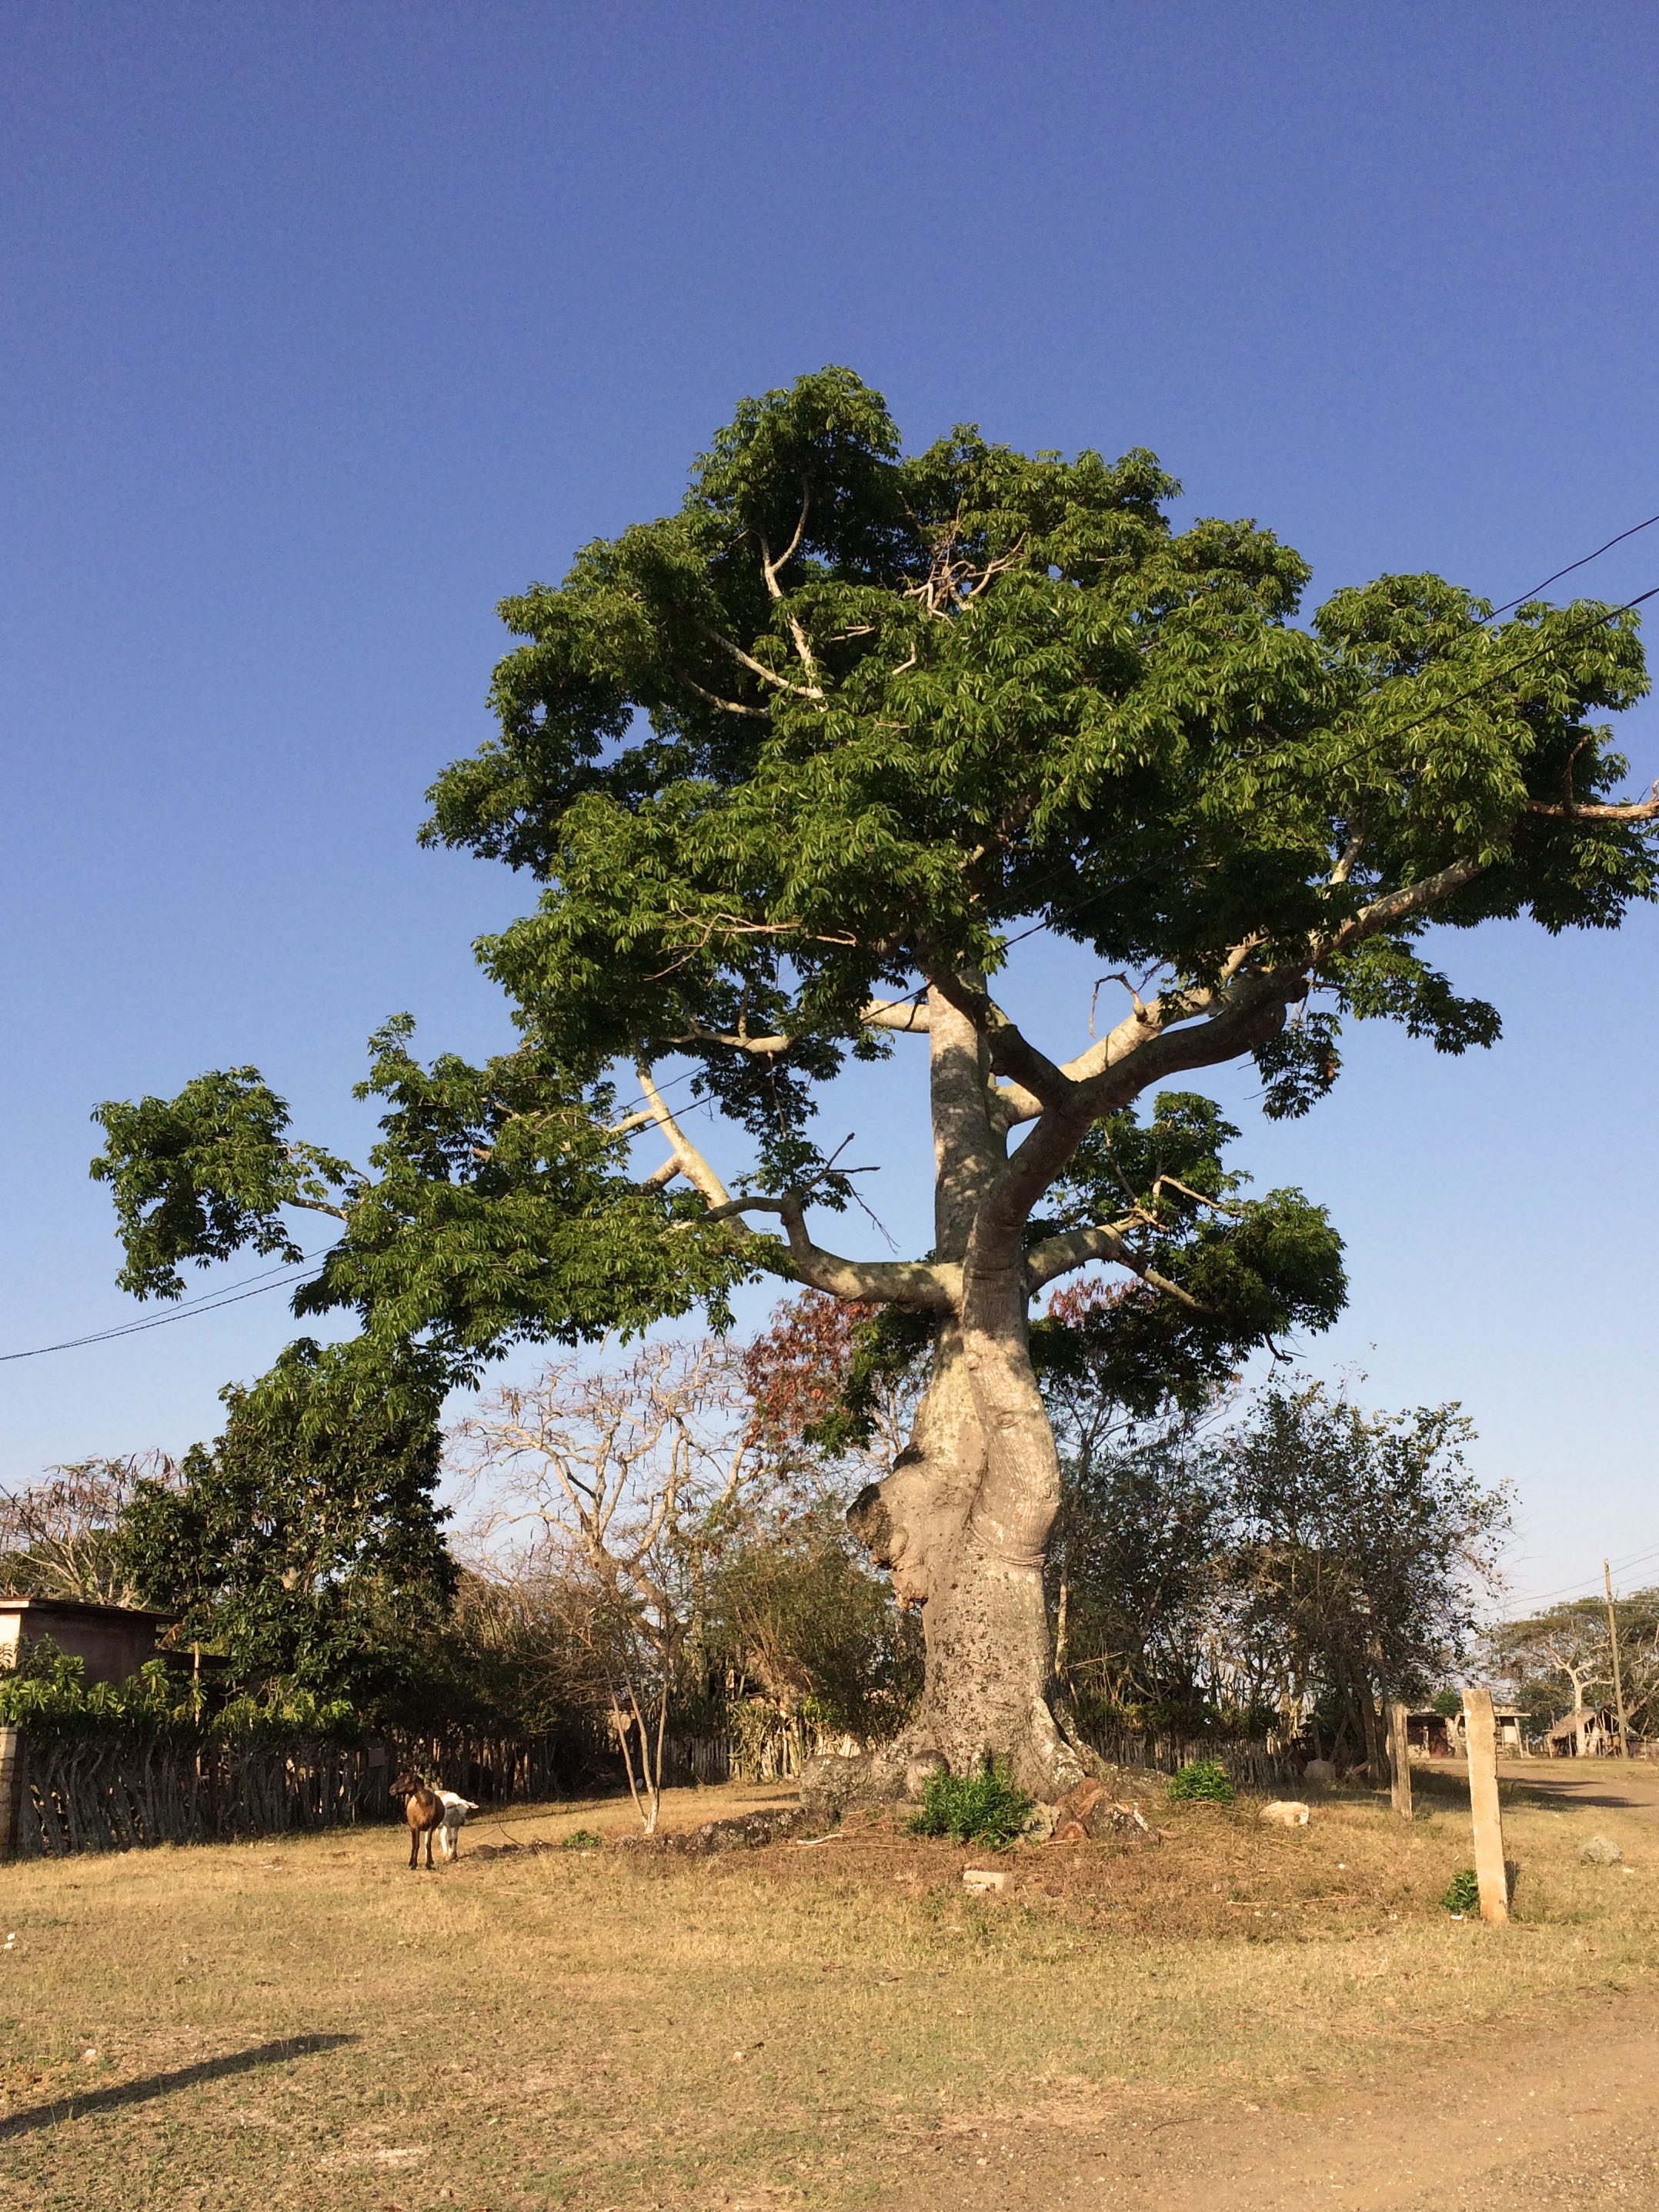 The ceiba tree we found that marked the spot